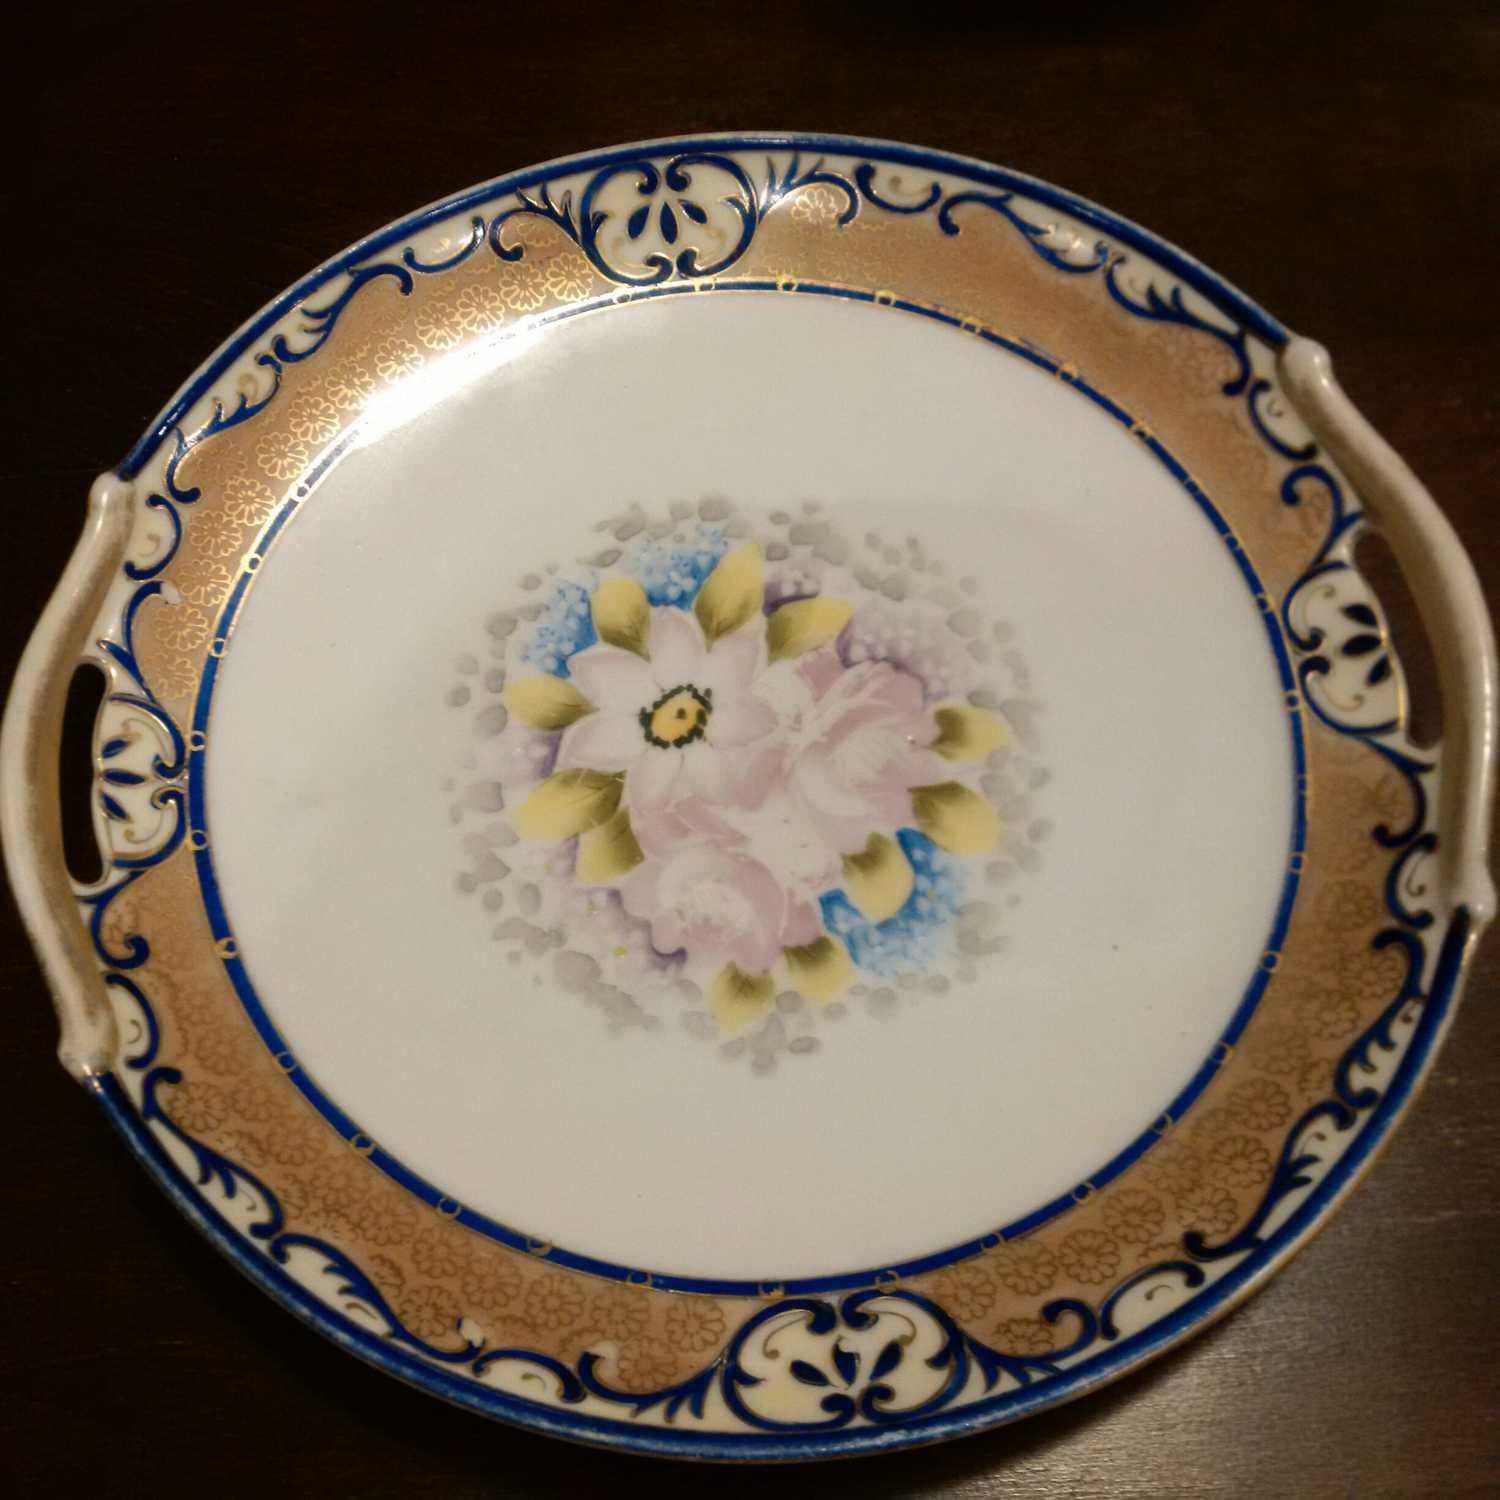 Meito China hand painted made in Japan